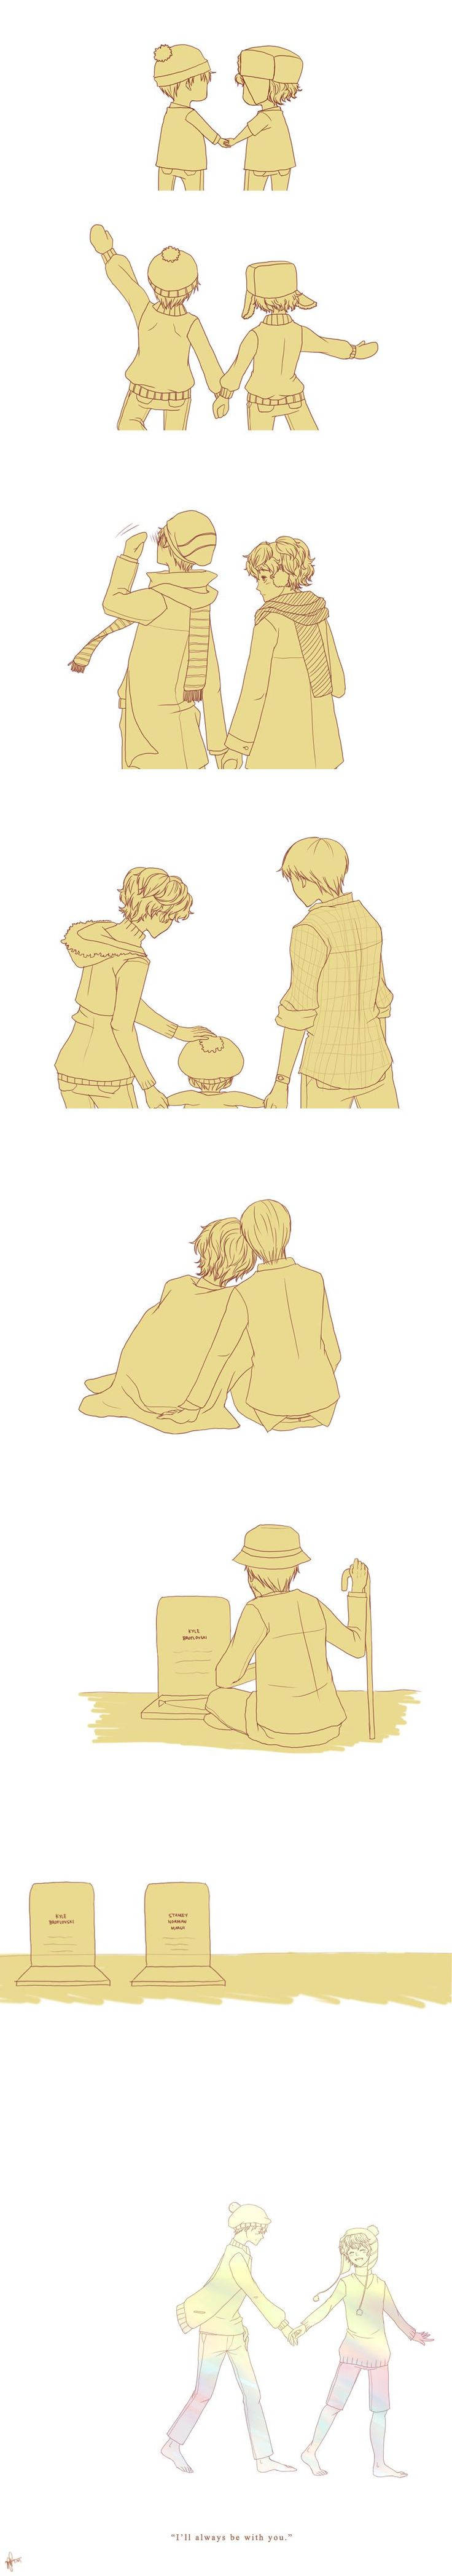 OH MY GOD THE FEELS ;-; BUT THAT WAS ADORABLE TO